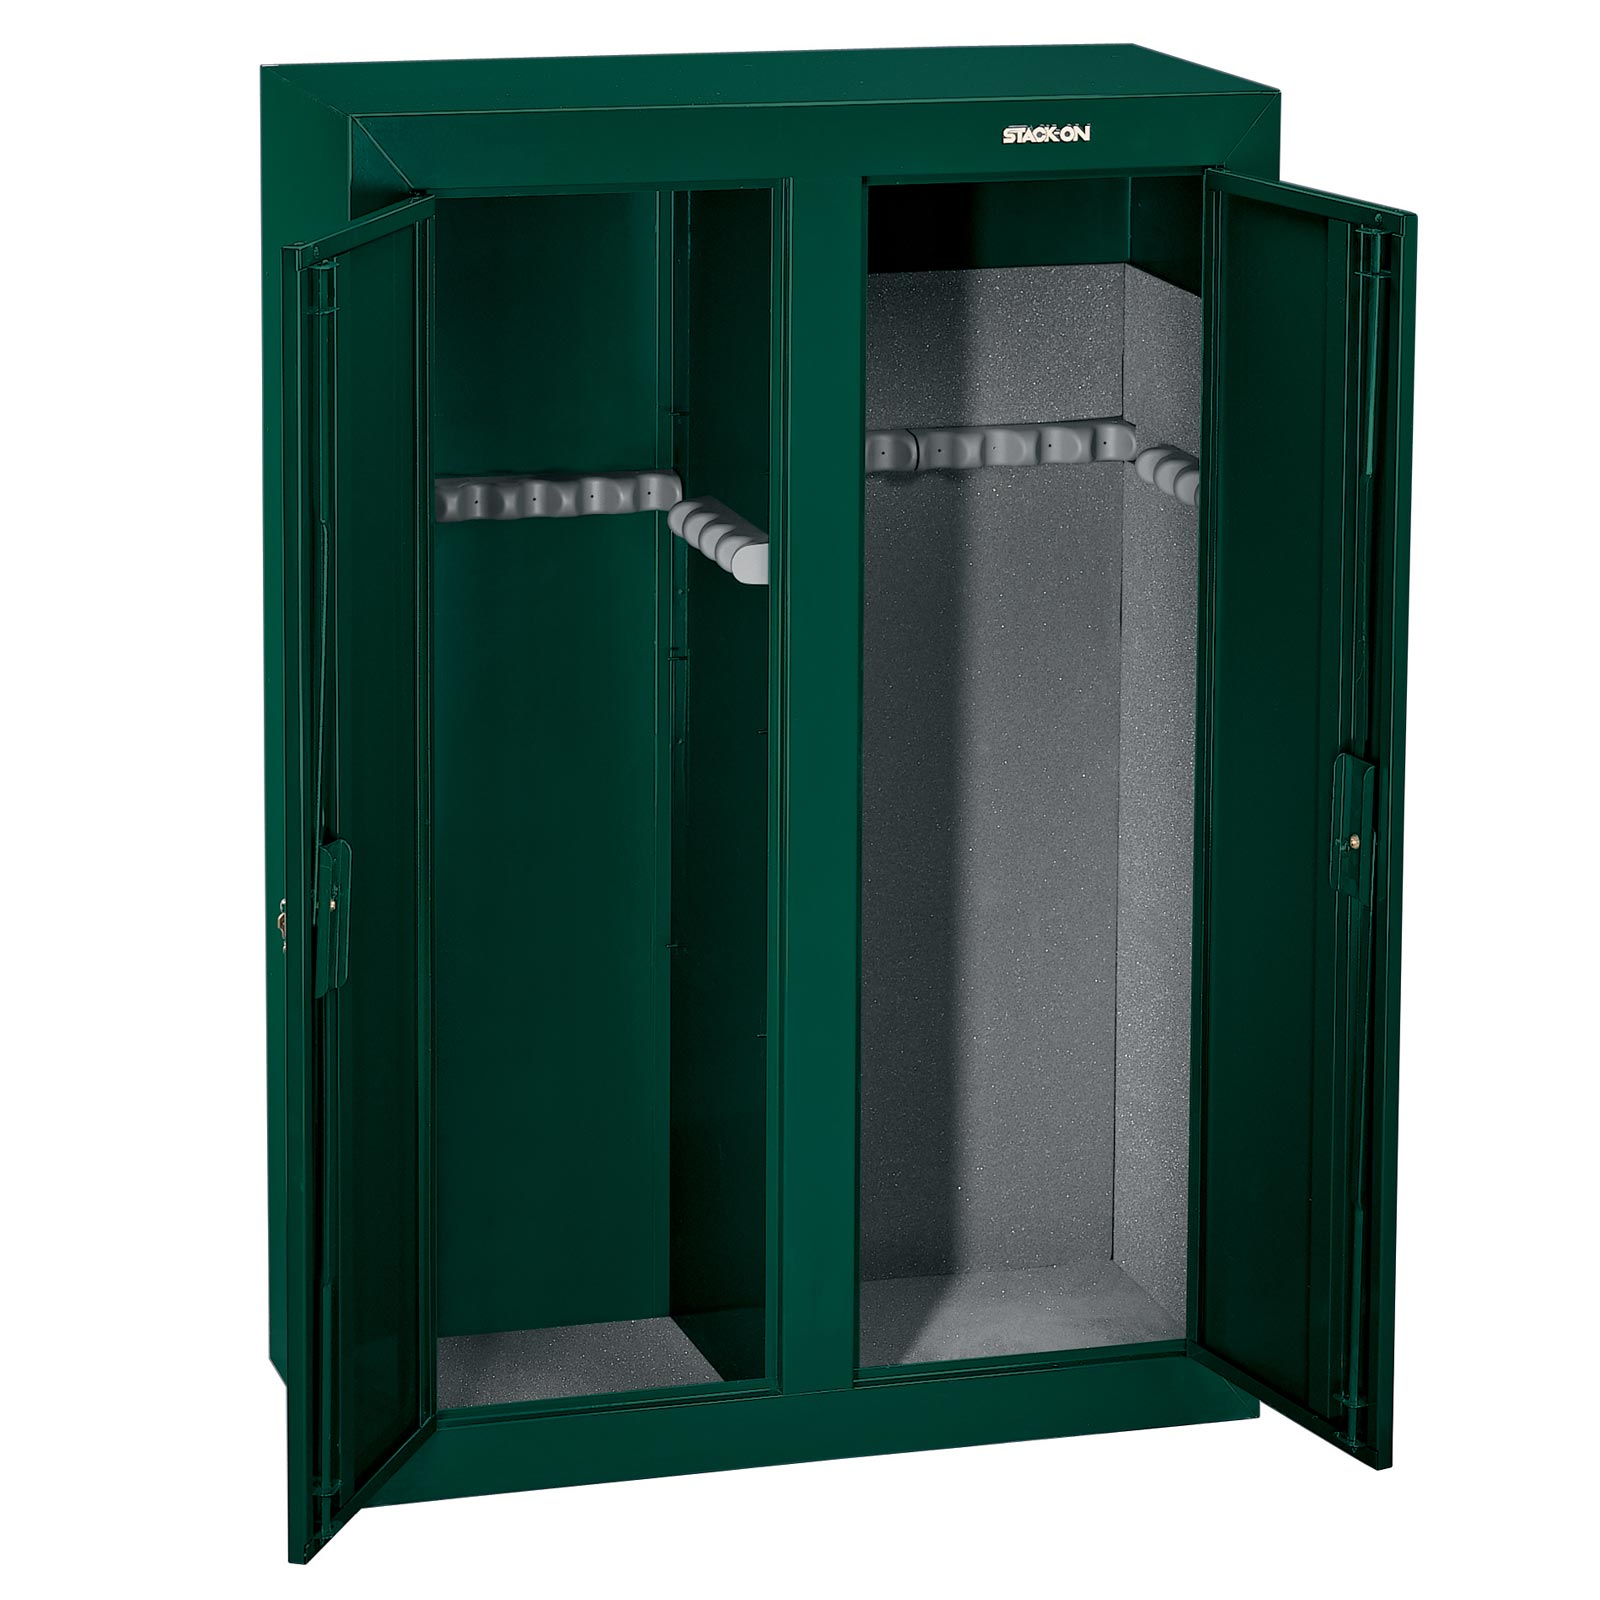 Stack-On GCDG-9216 Gun Cabinet Convertible Double Door Security ...